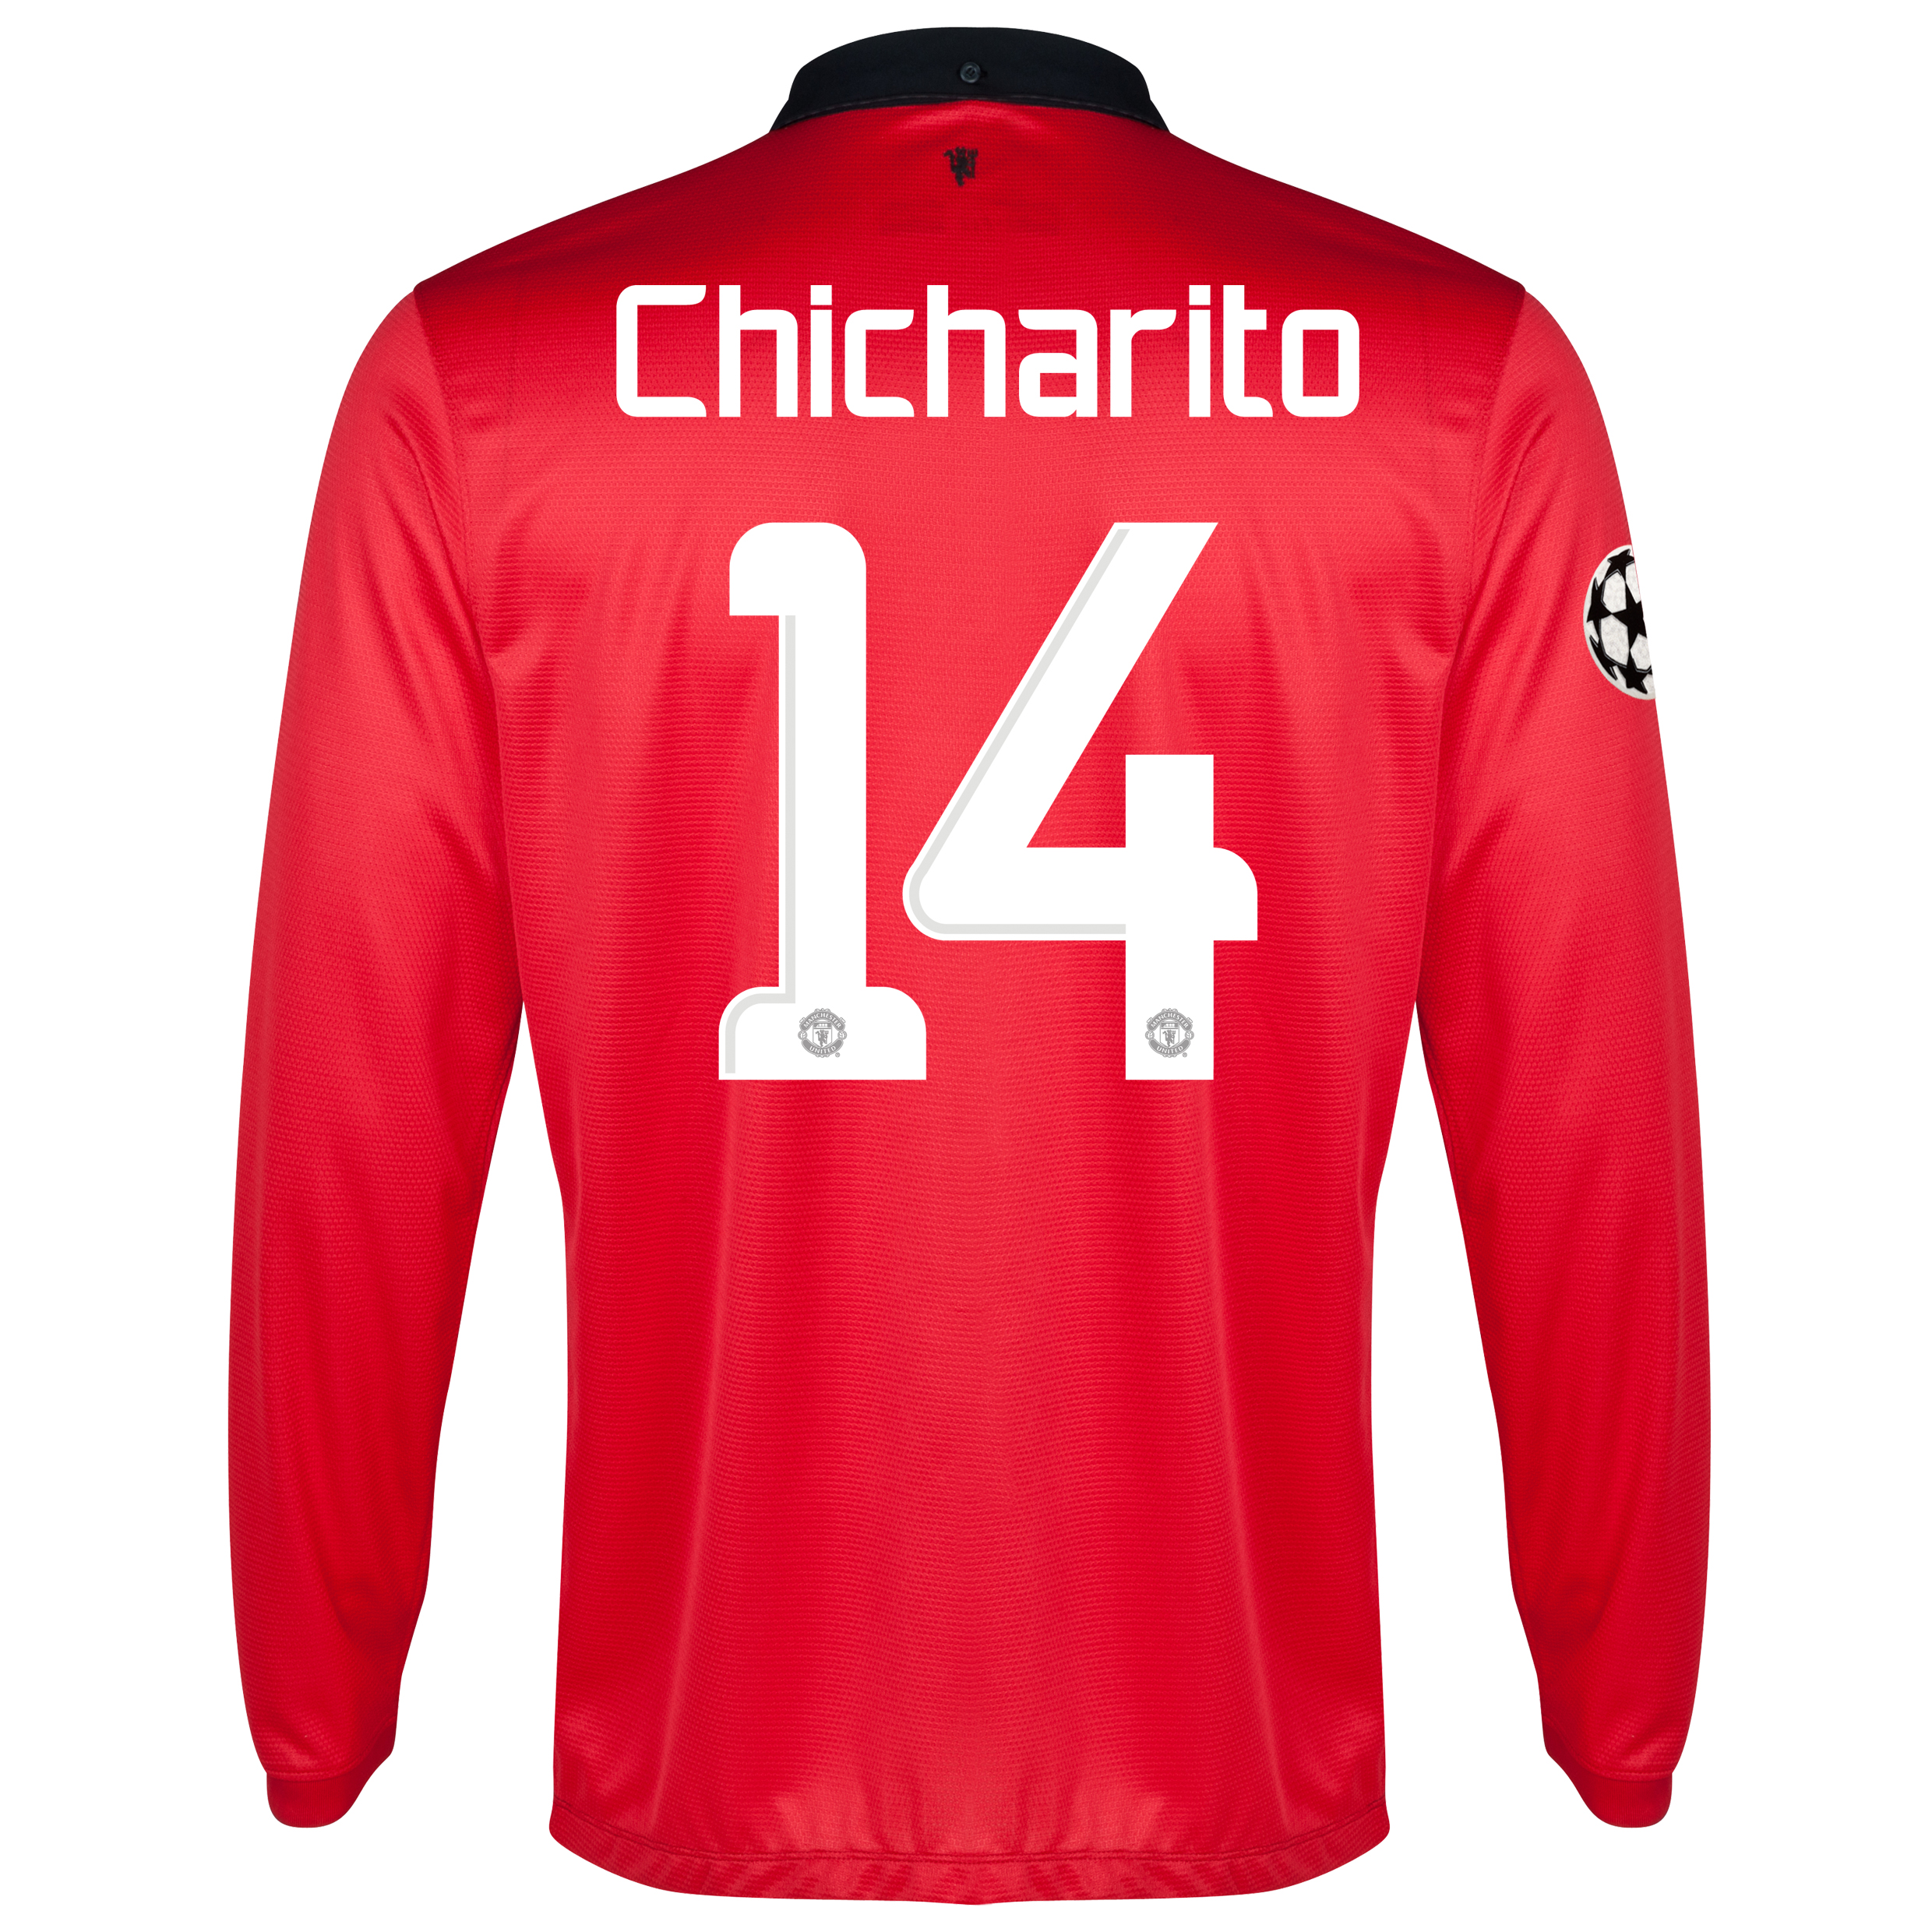 Manchester United UEFA Champions League Home Shirt 2013/14 - Long Sleeved - Kids with Chicharito 14 printing